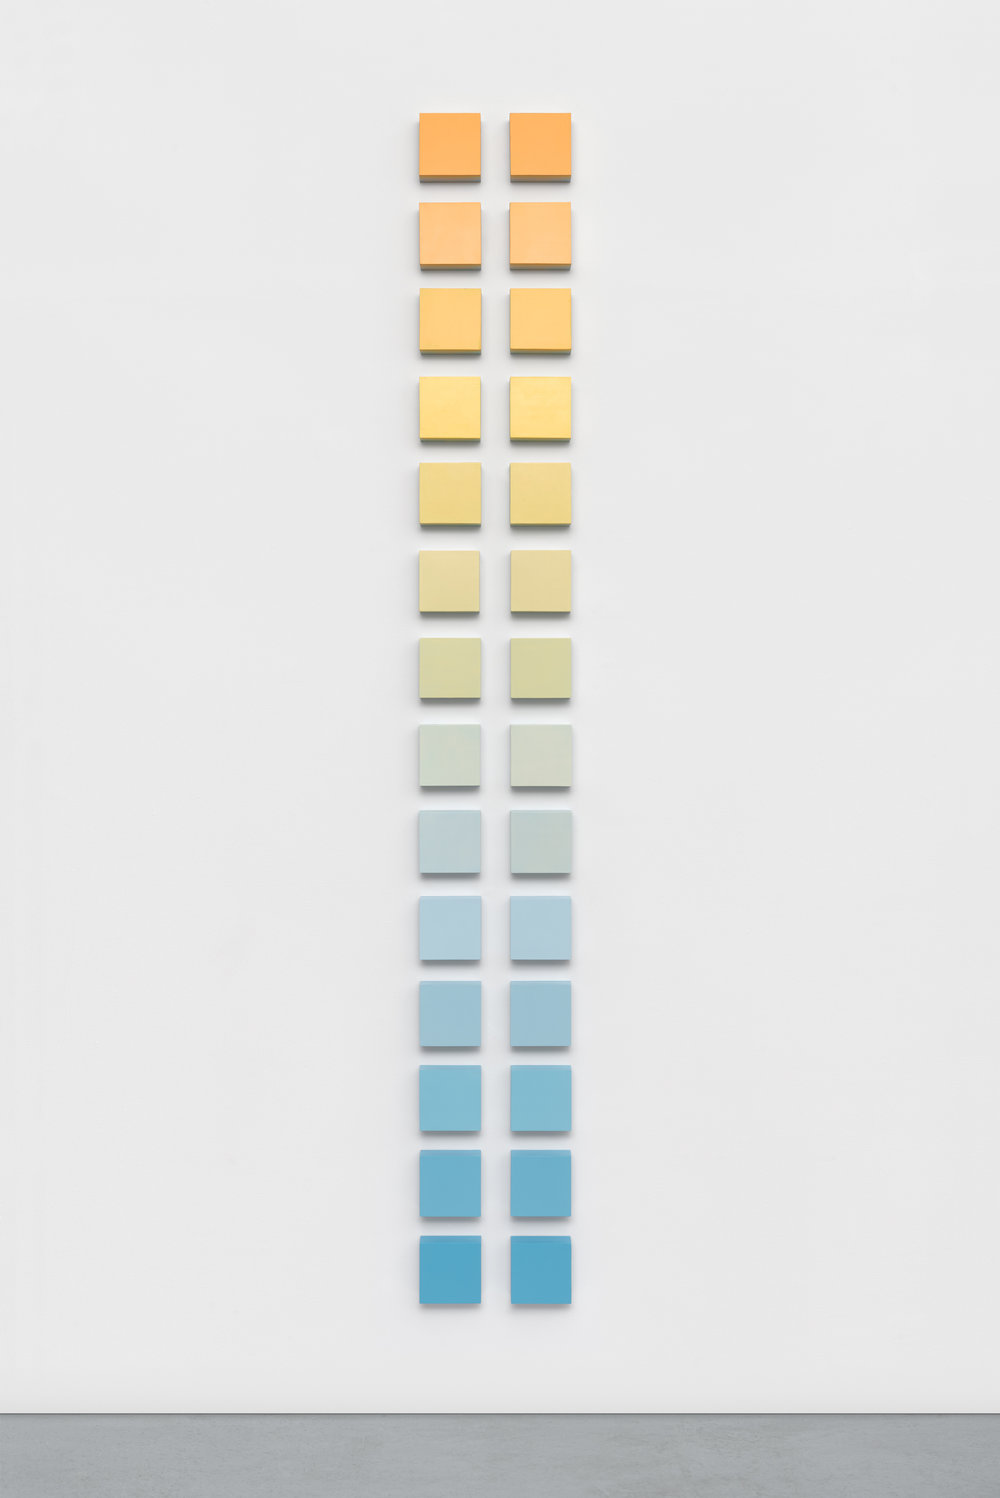 """Marigold Ladder,"" 2016, phosphorescent and acrylic on panel, (28) 5 x 5 x 2 inch panels, 96 x 12 x 2 inches overall"